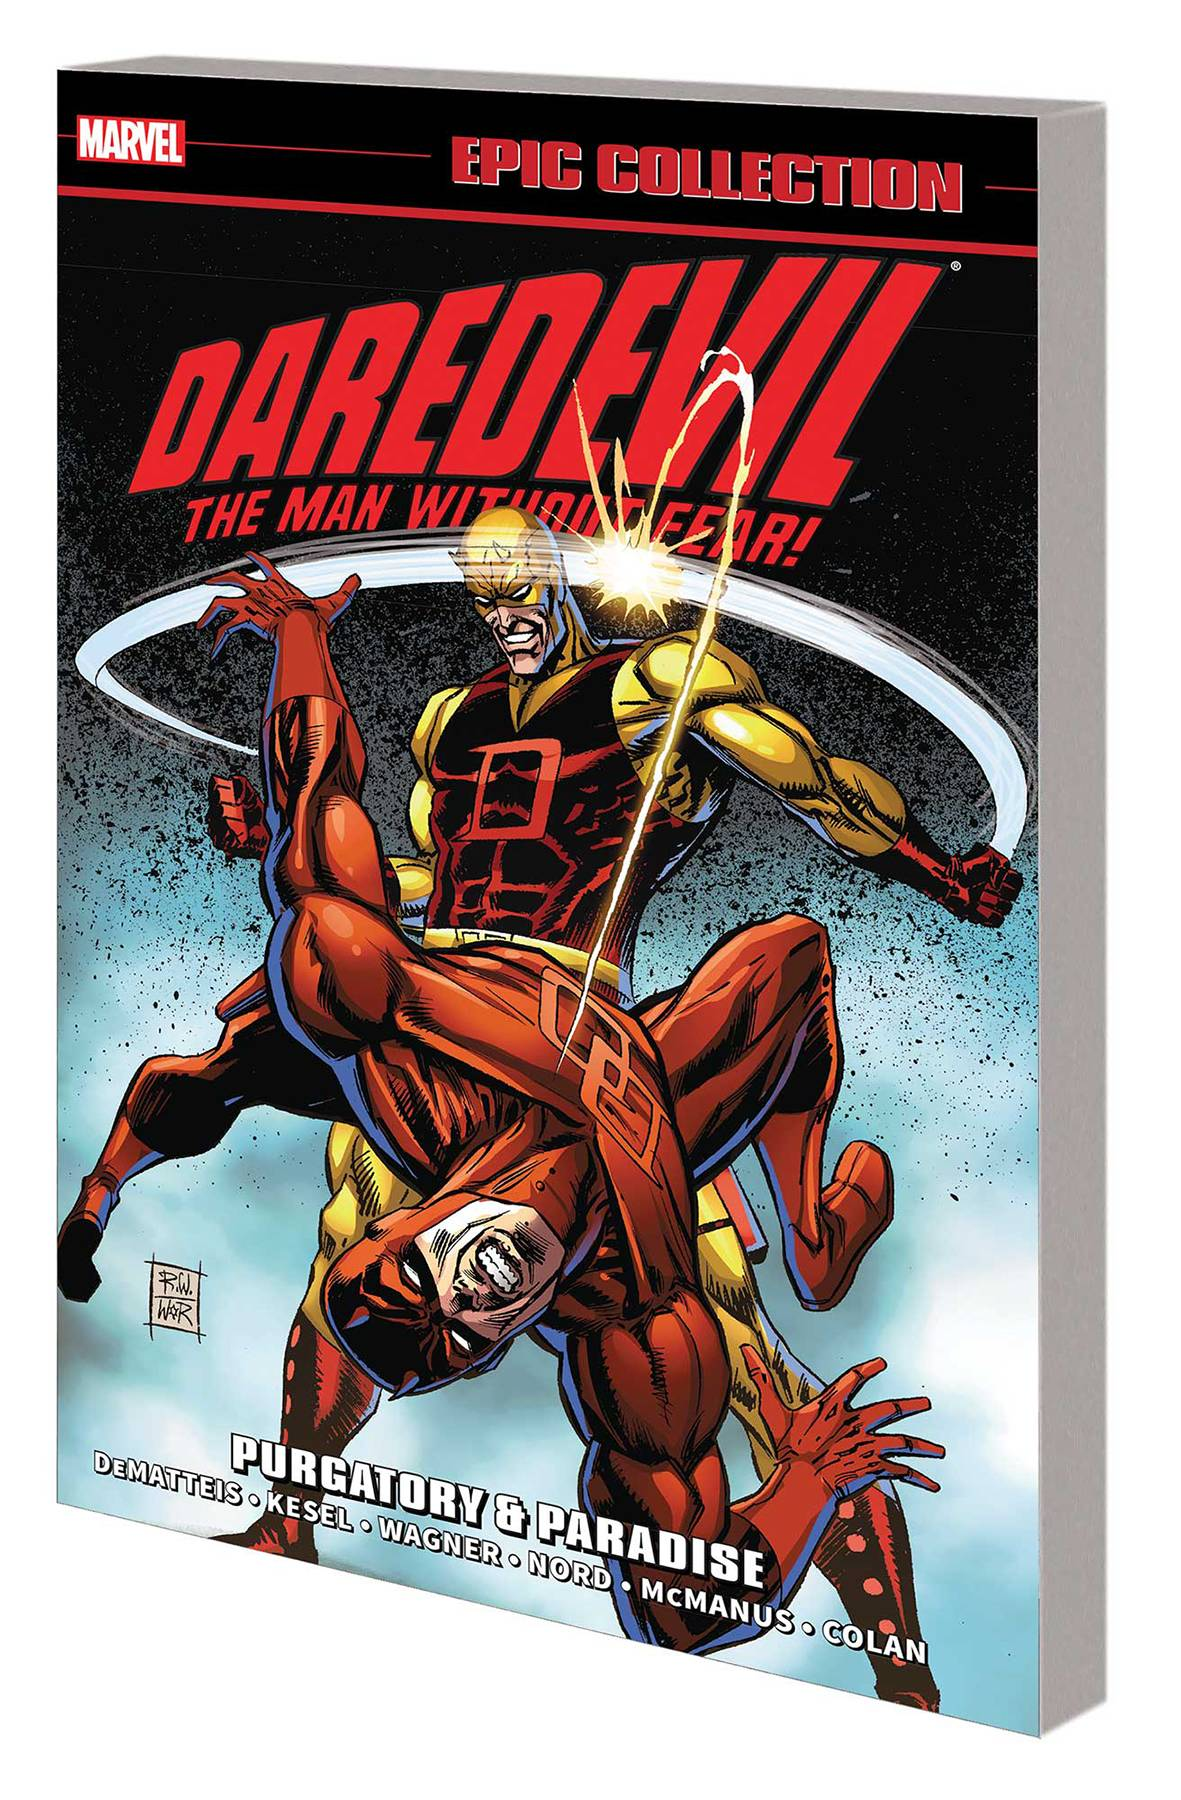 DAREDEVIL EPIC COLLECTION TP PURGATORY AND PARADISE.jpg